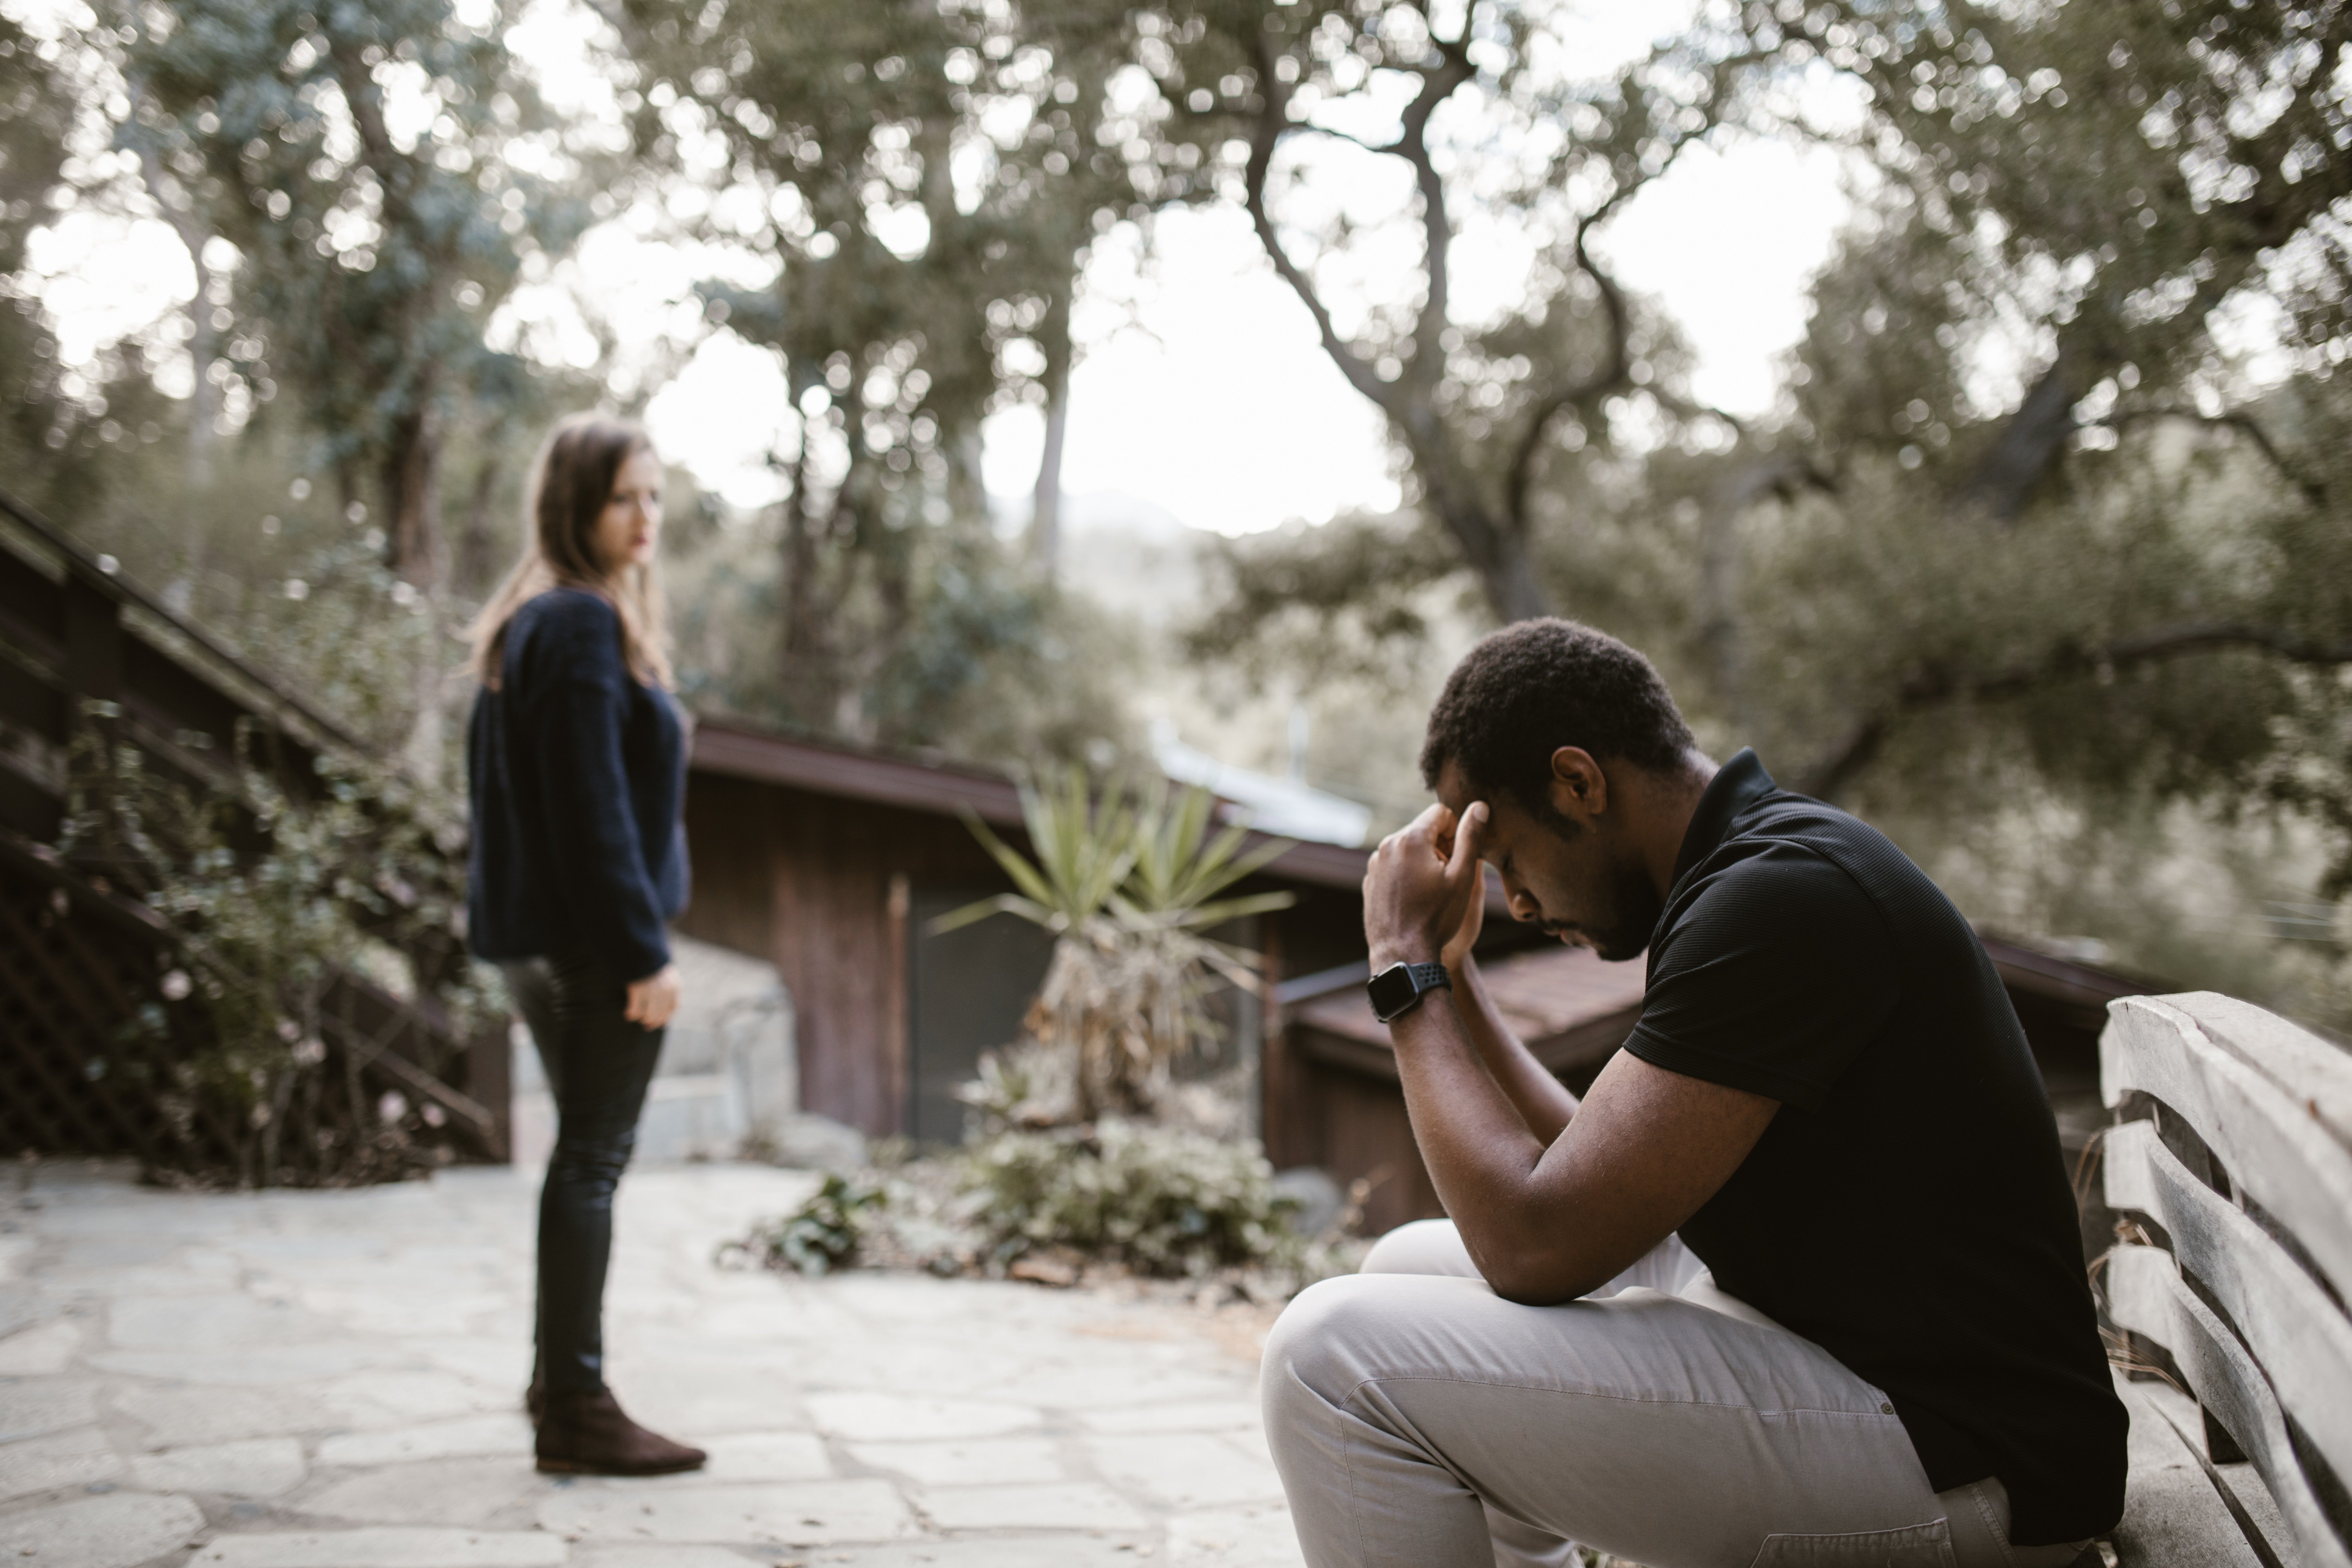 Pictured - A woman looking over a man sitting on a bench looking tense | Source: Pexels